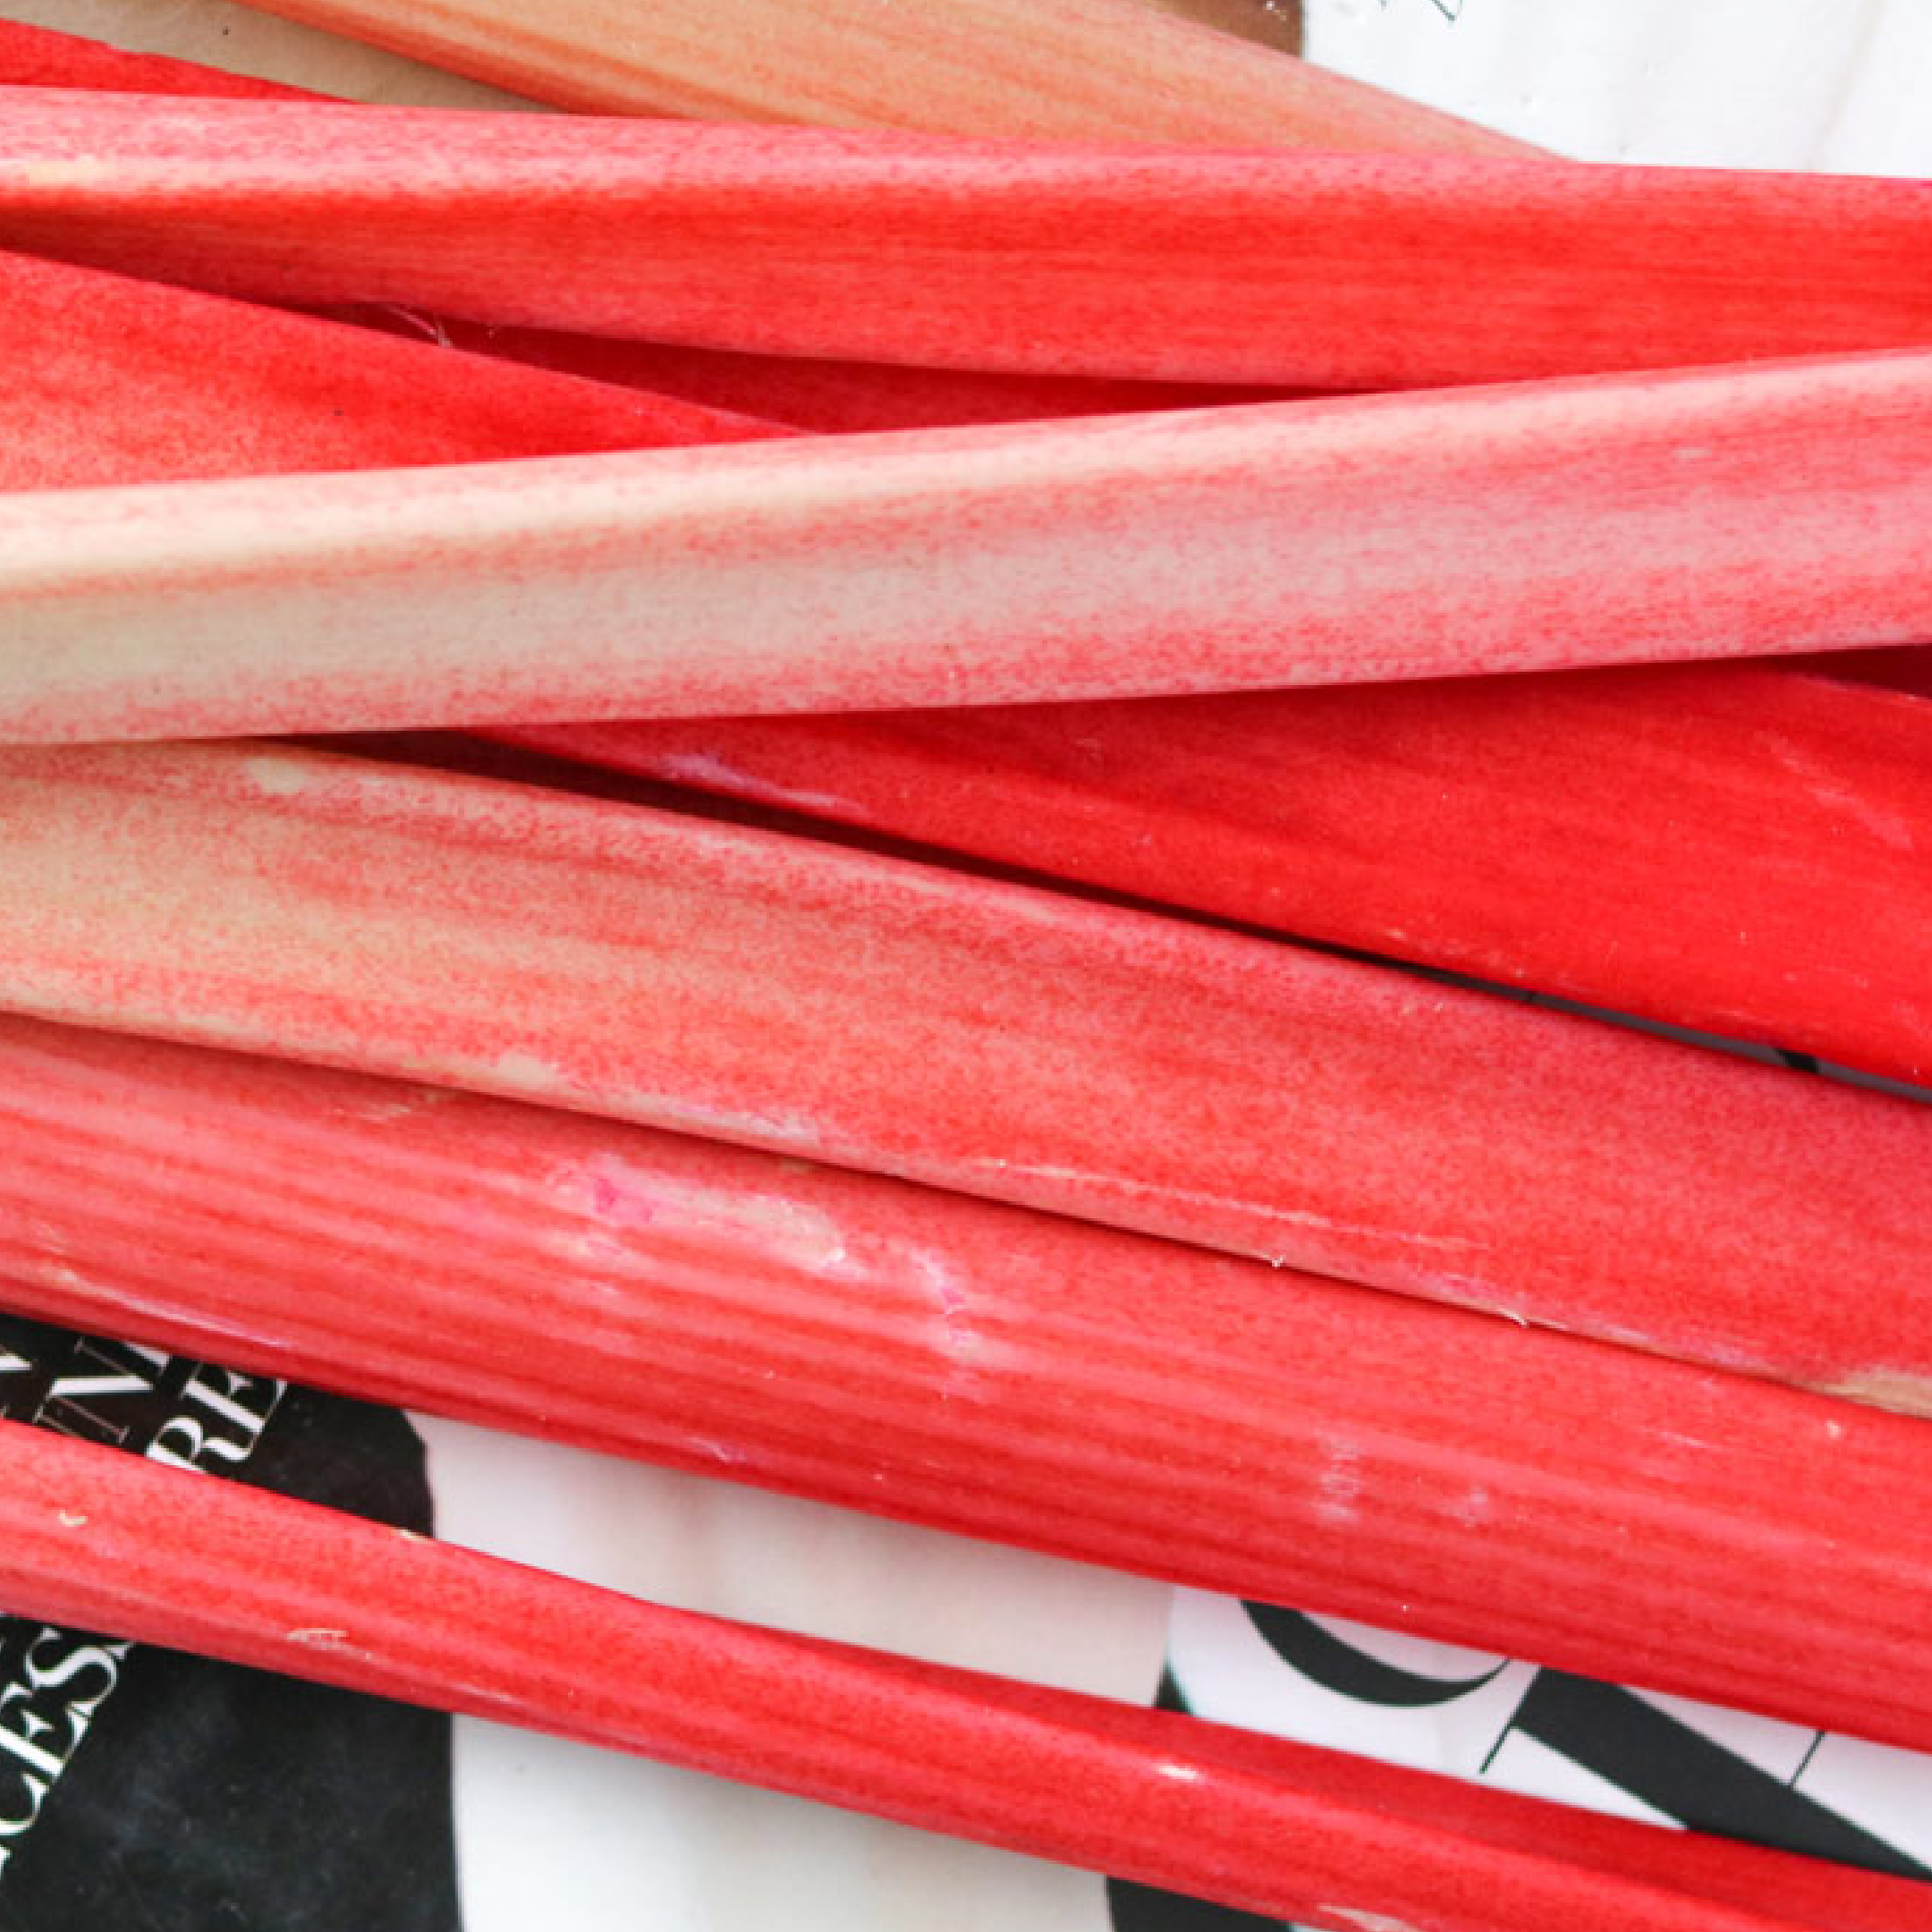 Rhubarb in bright pink by Bakd&Raw